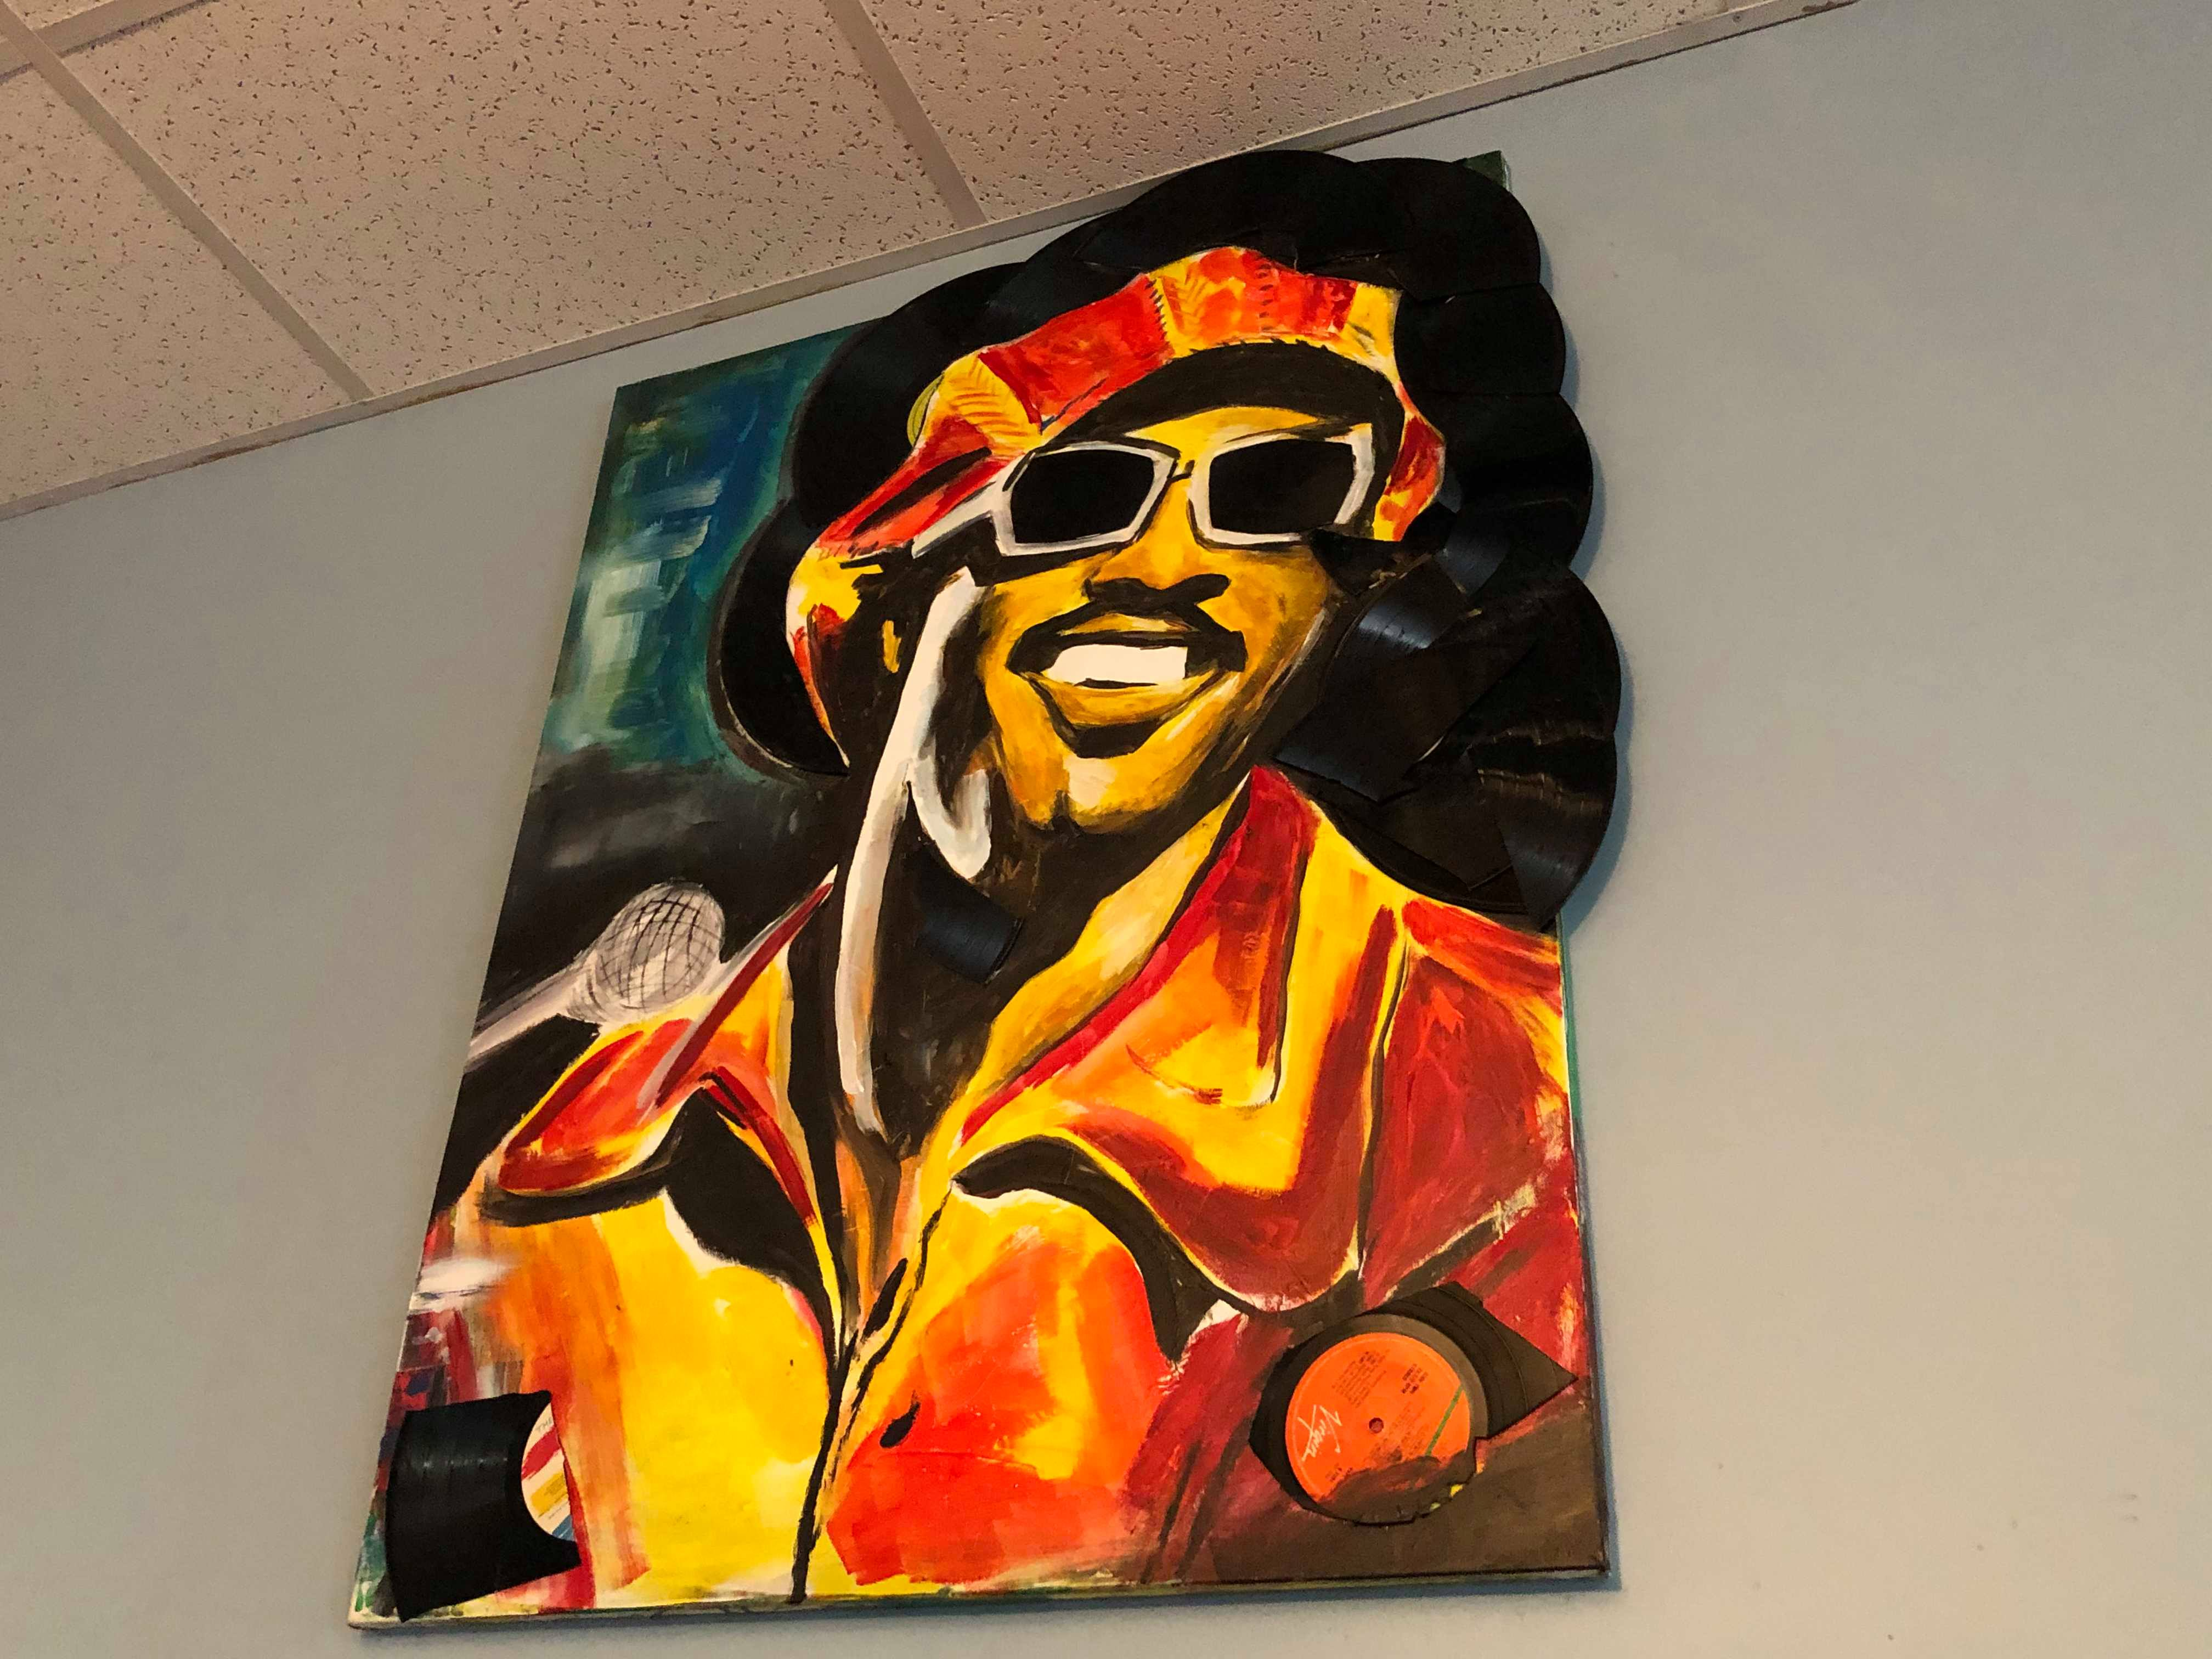 Painting by local artist Lenny Cain on display at Slice of Soul Pizza Lounge located at 1299 Madison Avenue in Madison Heights. (Scarlet Ponder)